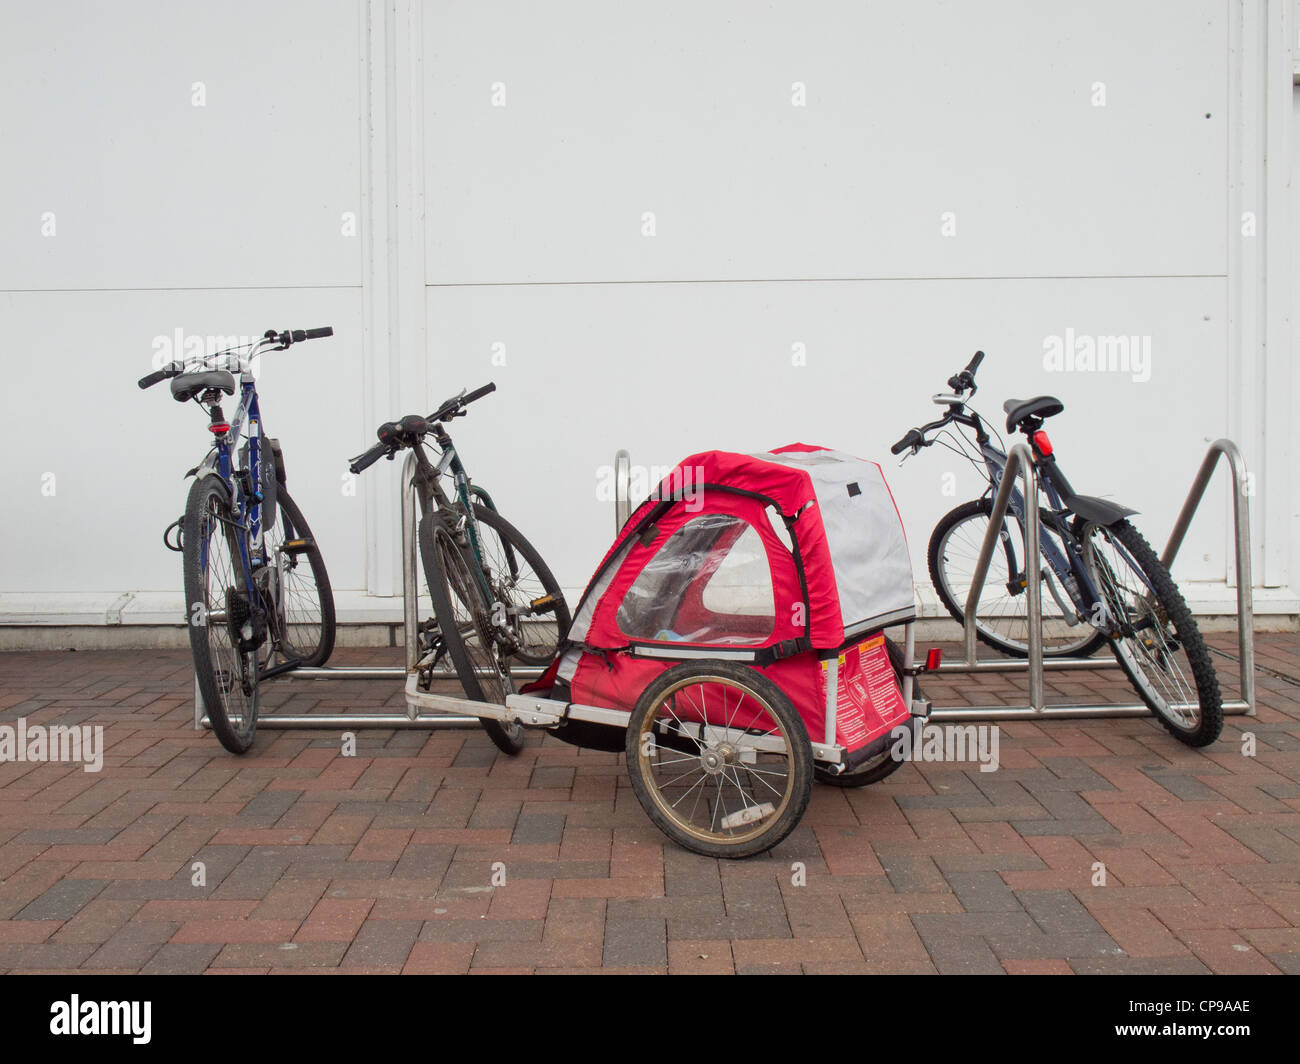 Bicycle parking with bicycles and bike trailer. - Stock Image